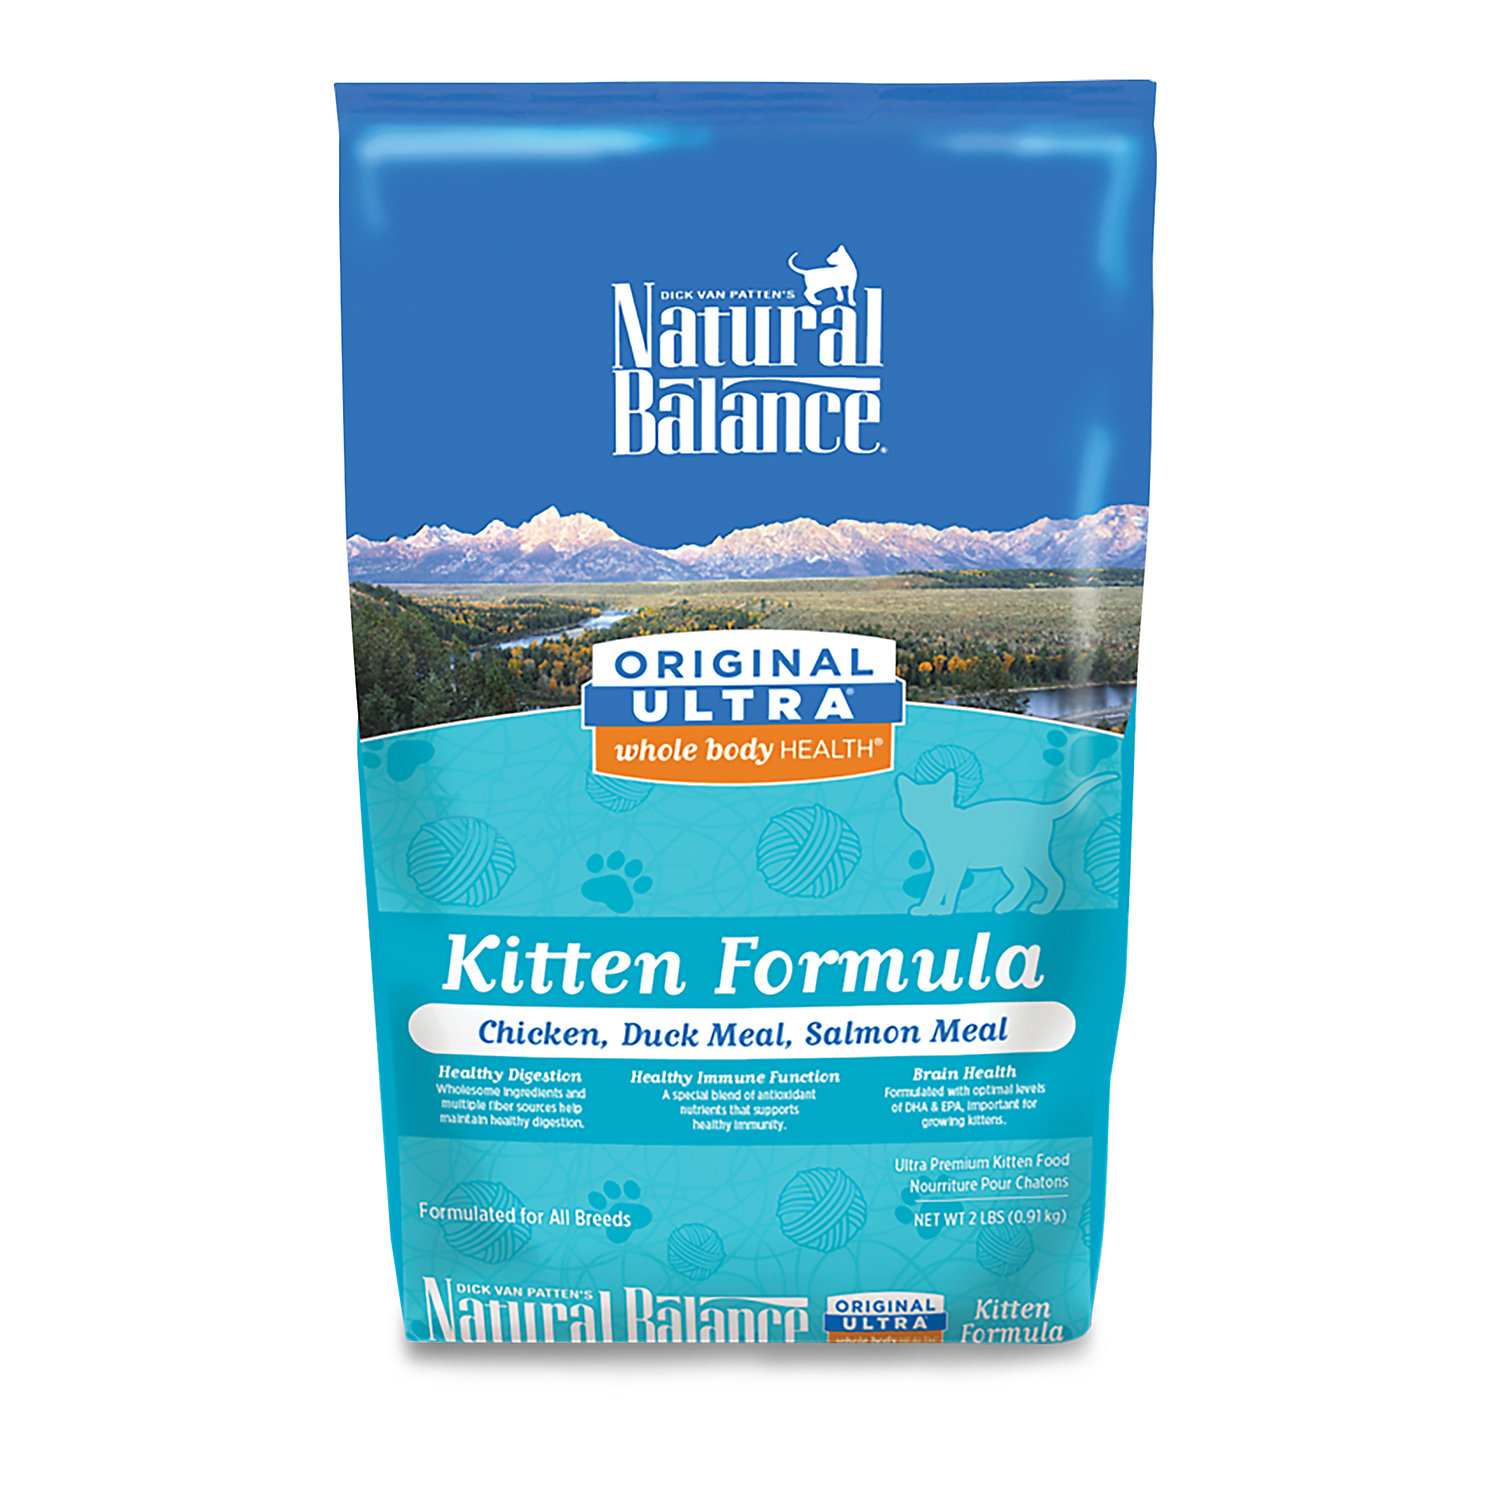 Natural Balance Original Ultra Whole Body Health Chicken Duck Meal Salmon Meal Kitten Food 2 Lbs.